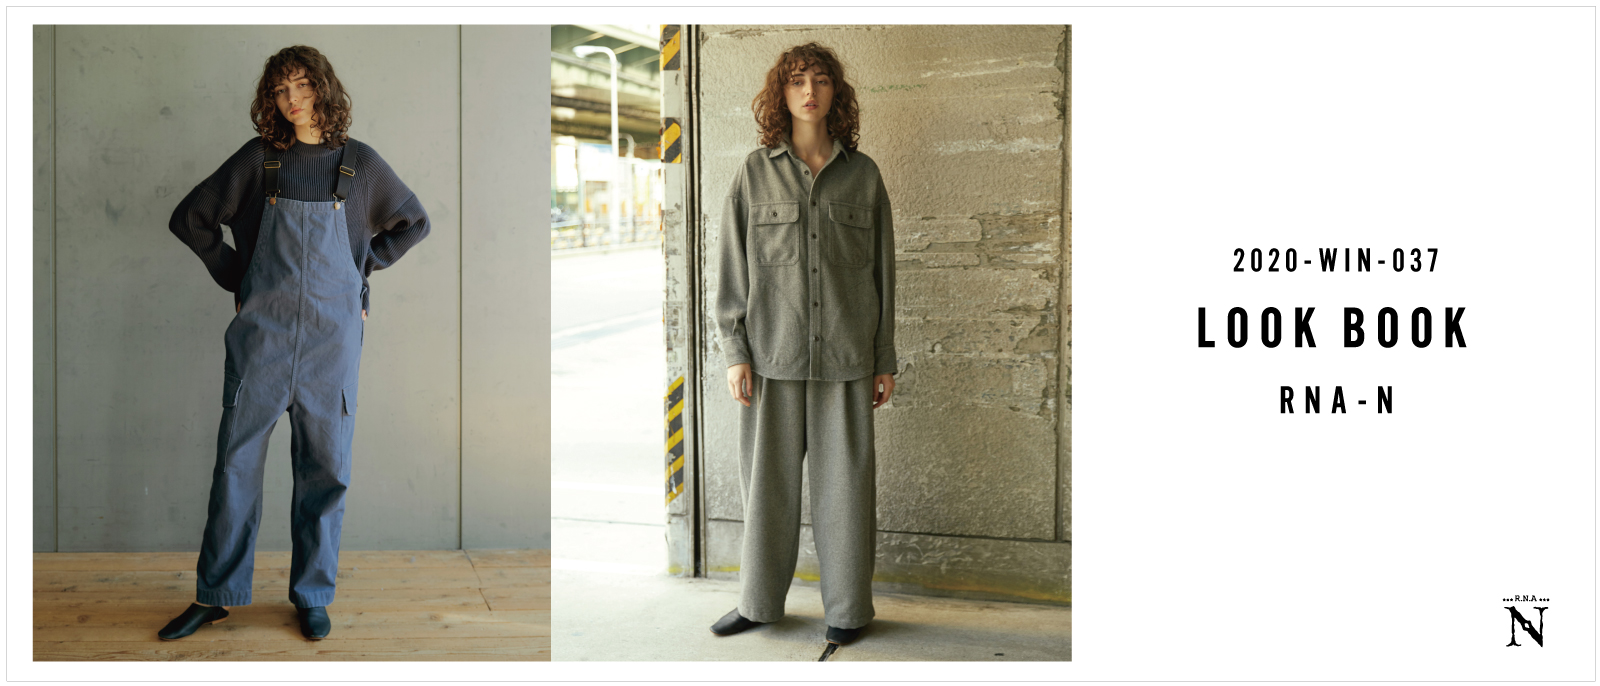 RNA-N 2020 WINTER LOOKBOOK